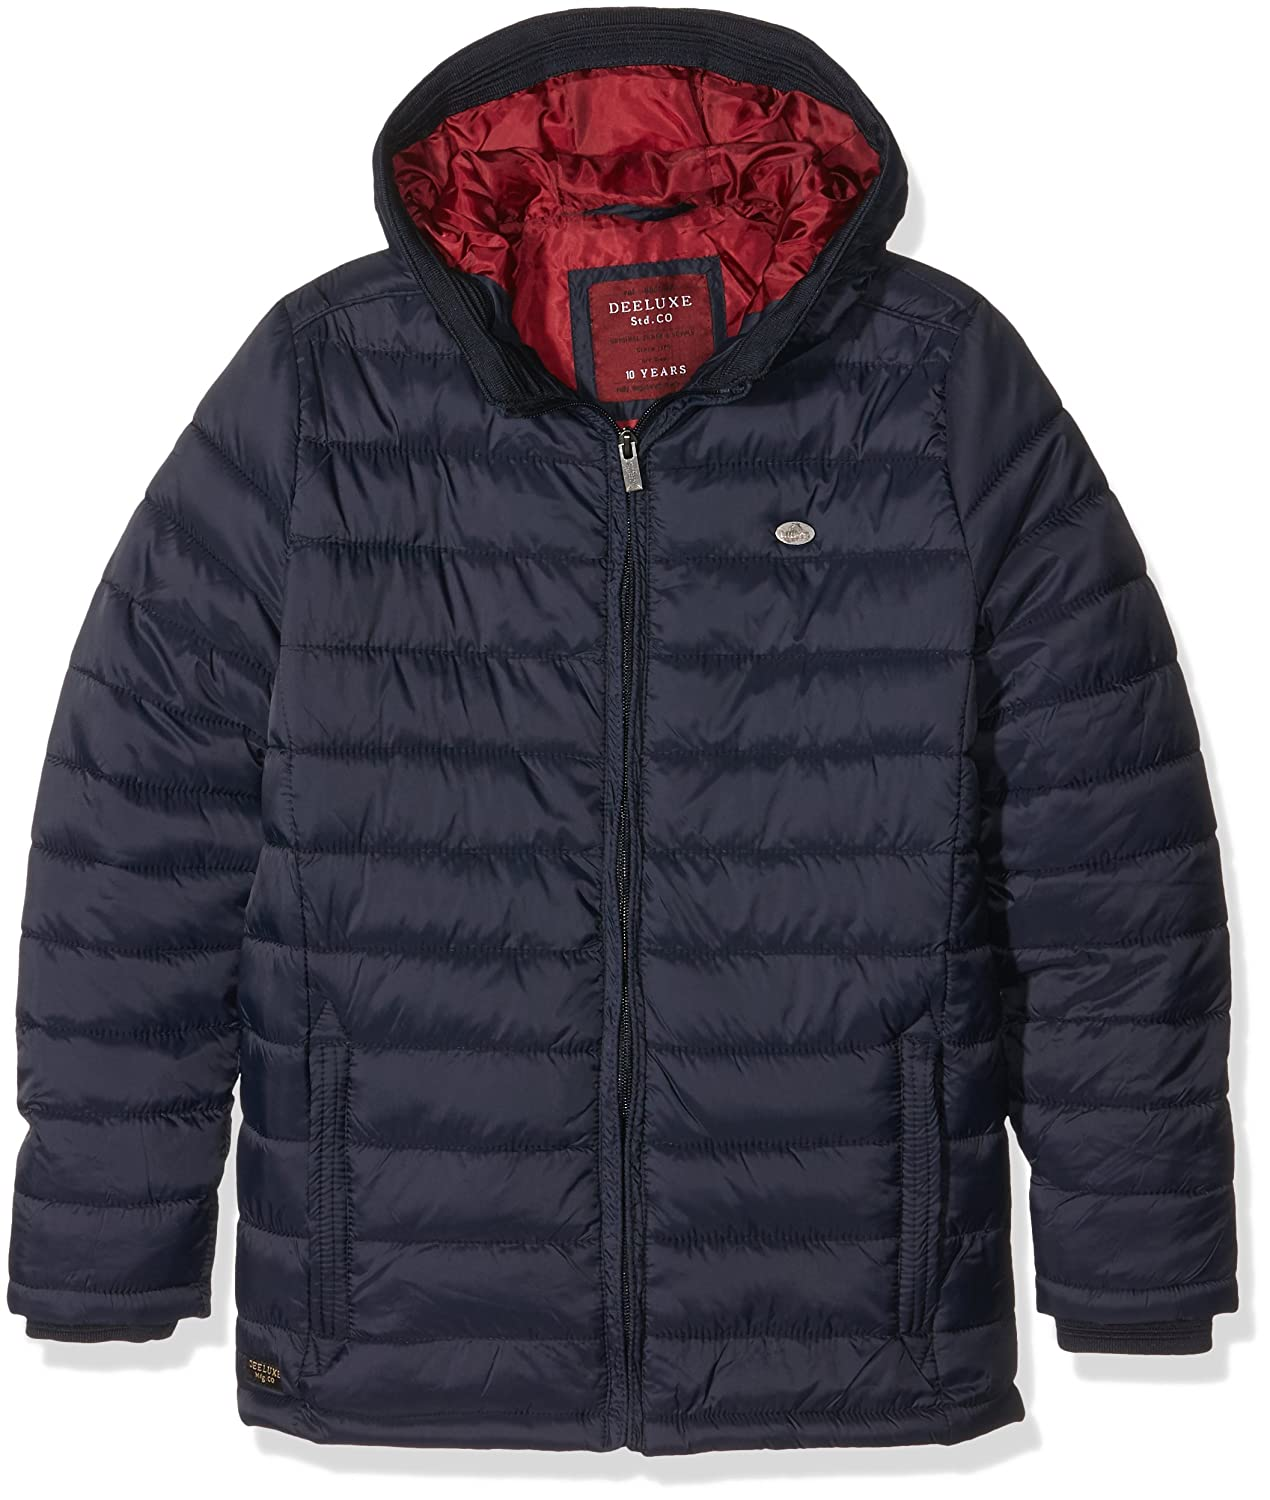 Deeluxe Ultime, Cappotto Bambino Blu (Navy) 10 Anni W16625K